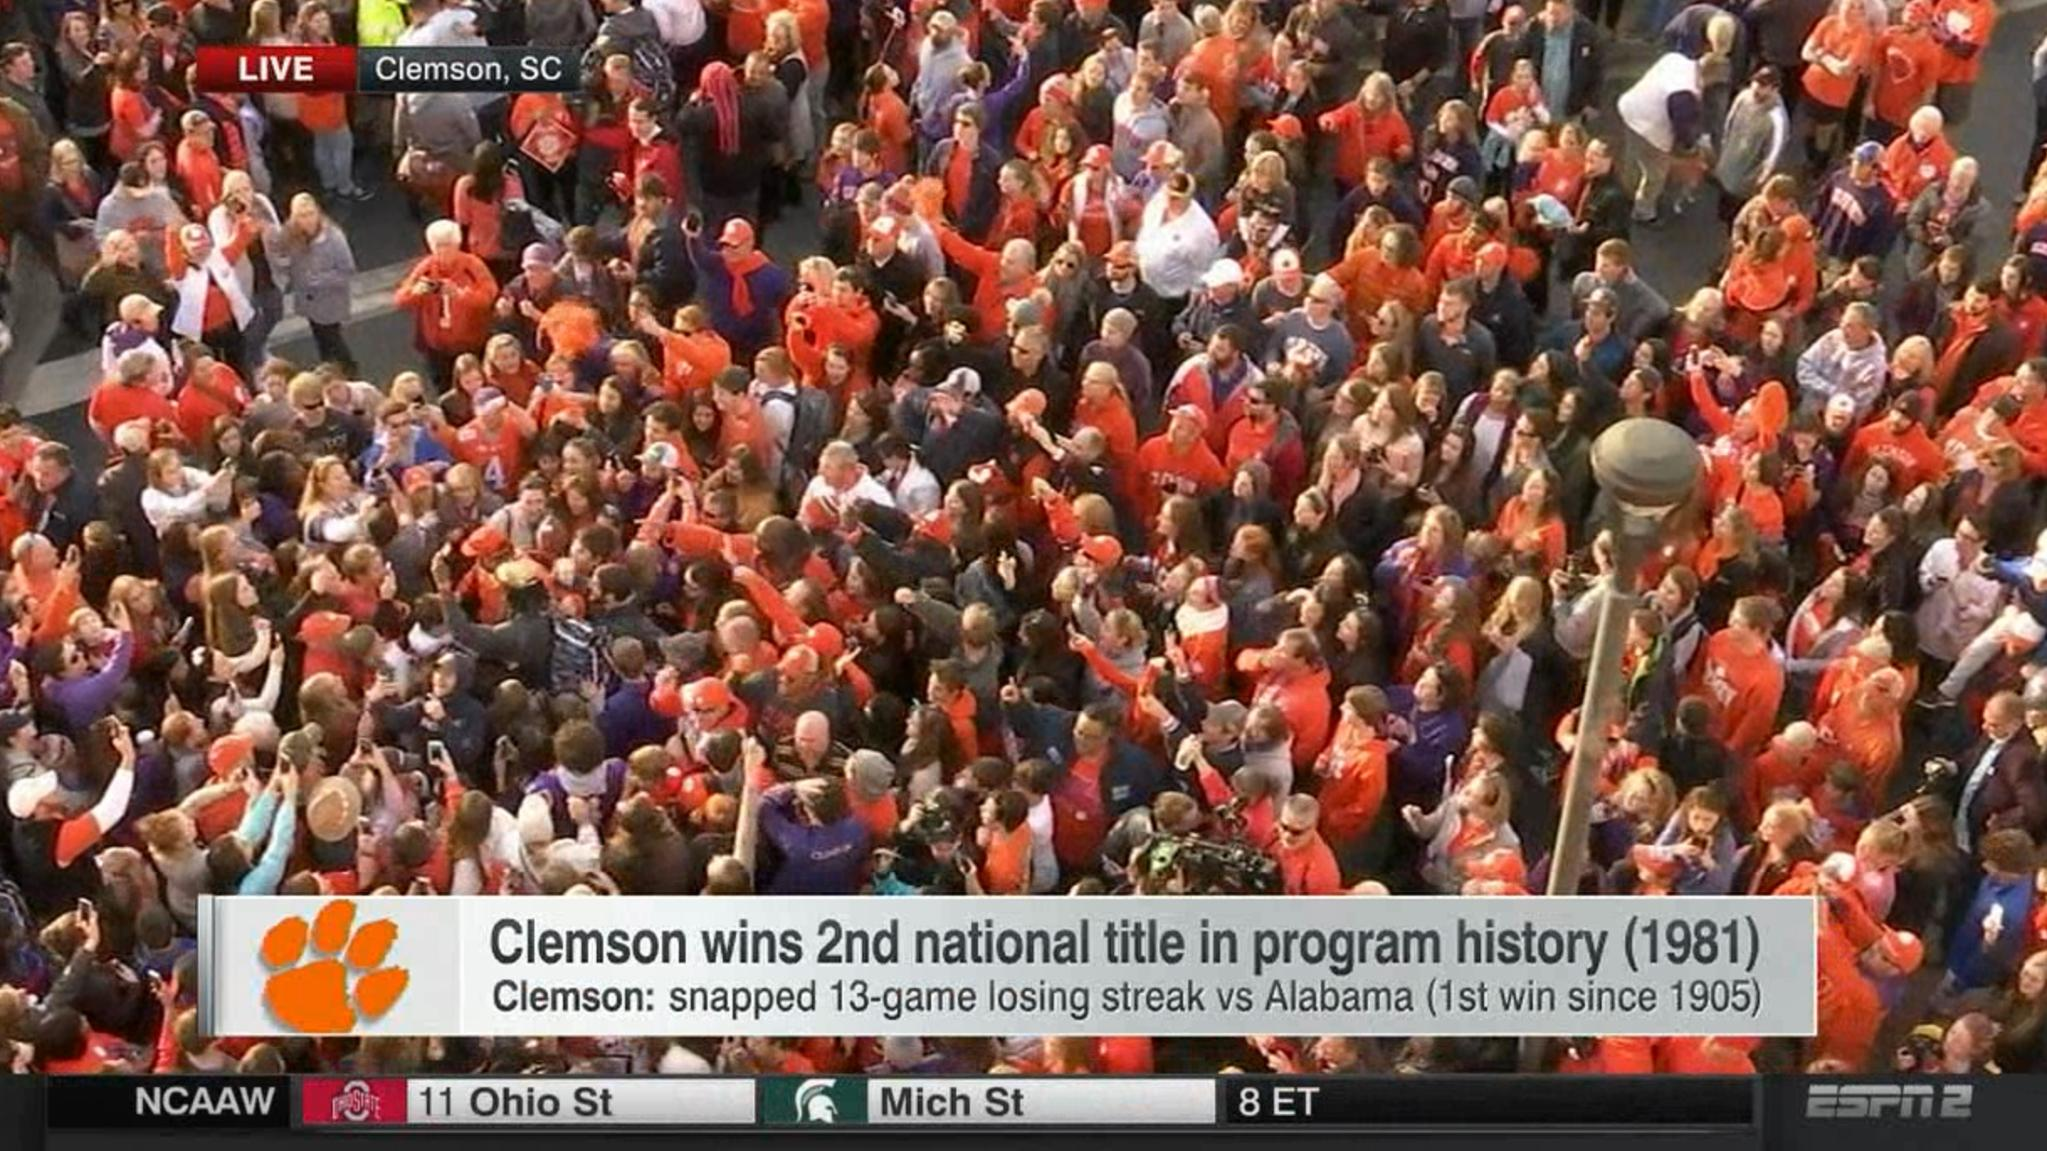 Somewhere in this crowd is Mike Williams. #LIVEonSC https://t.co/O9qE5ILE99